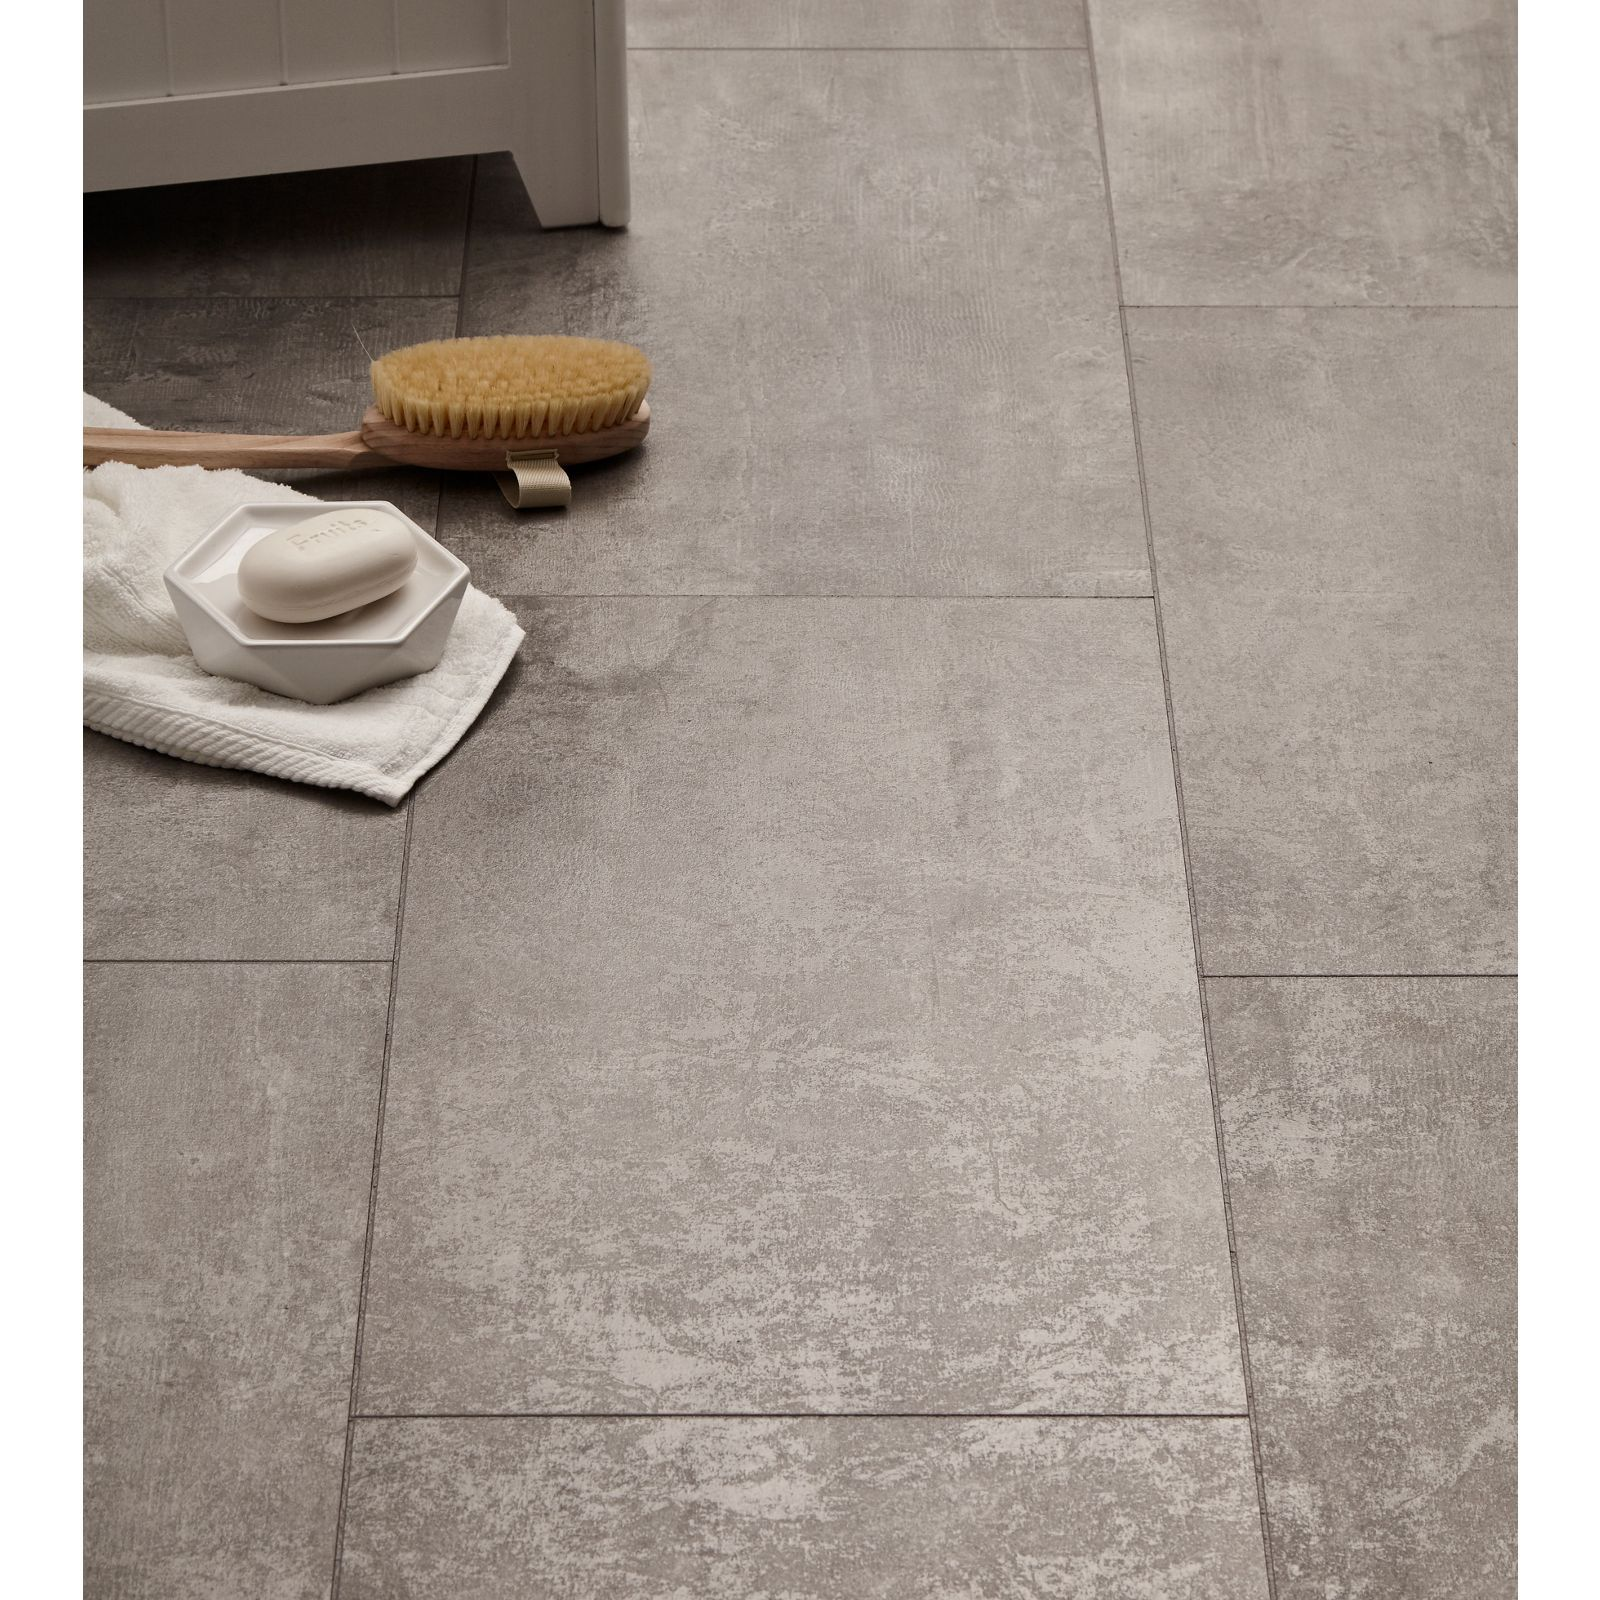 Concrete Tile Effect Laminate Flooring Kitchen Build Pinterest